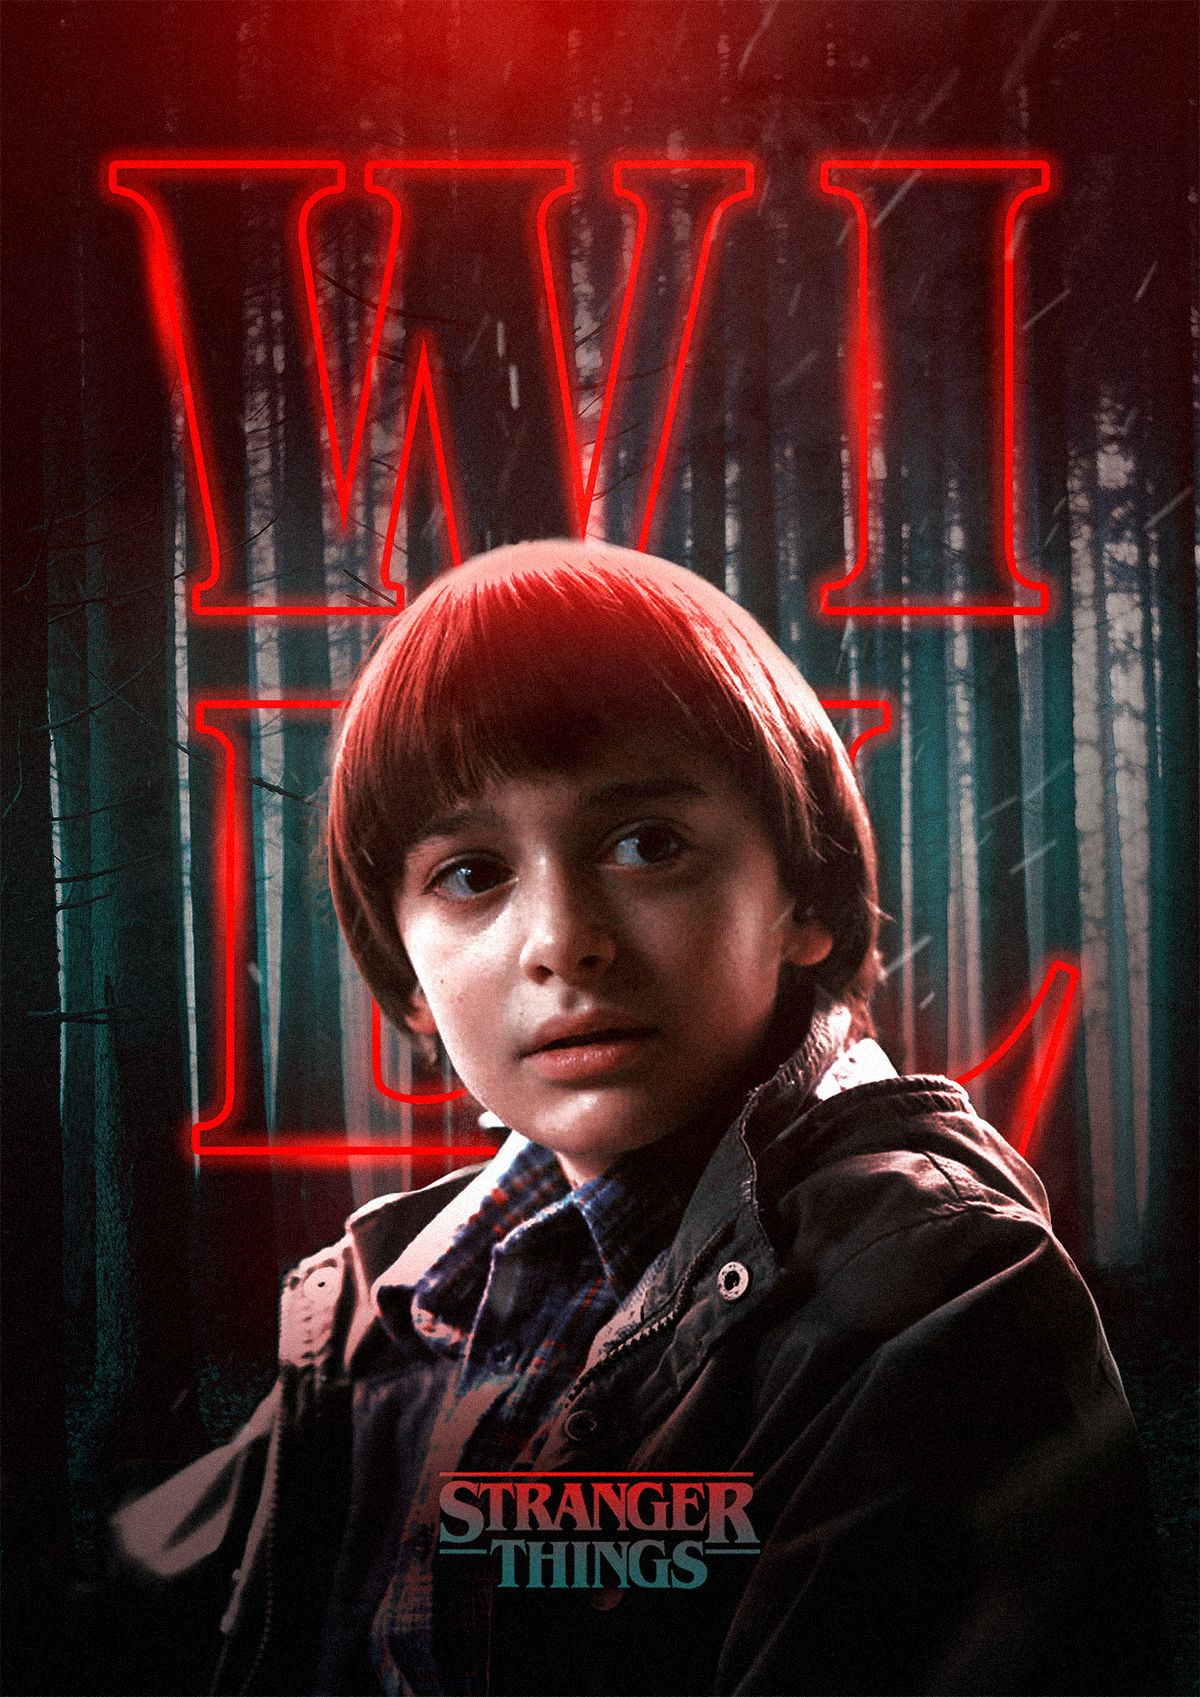 Spooky Stranger Things Characters Posters  Digital Artist and designer Rigved Sathe well-known by the Fubiz team just created a wonderful series of posters with the Strangers Things tv show characters. With the visual codes and the graphic universe of the show he created posters for each of the main characters in a stunning Photoshop manipulation showing his post productions and editing skills to realize these great artworks.           #xemtvhay